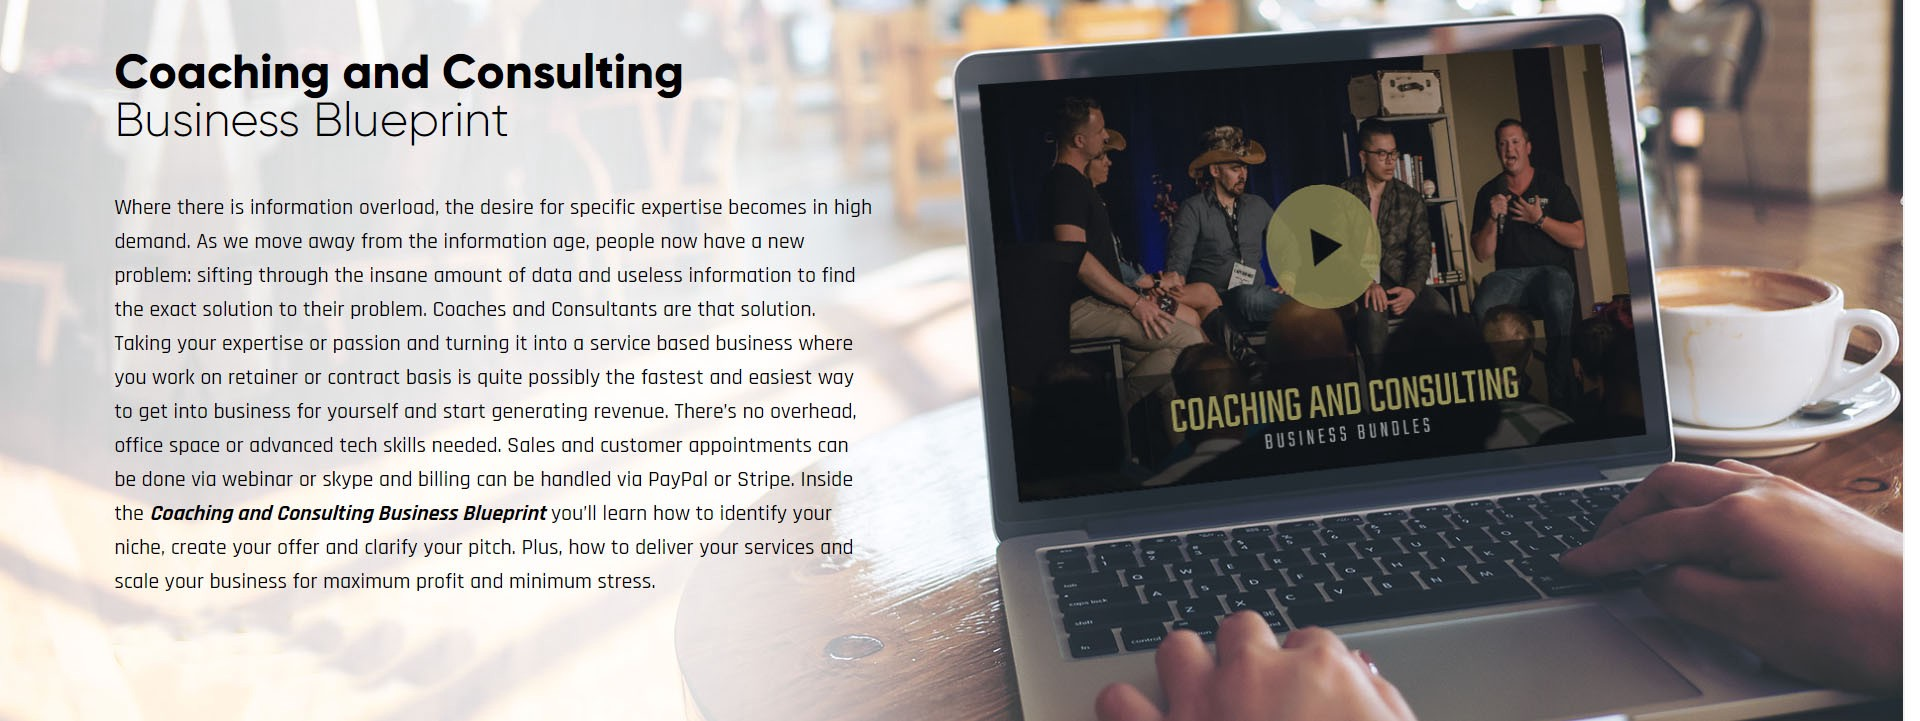 Coaching And Consulting Business Blueprint Print-screen